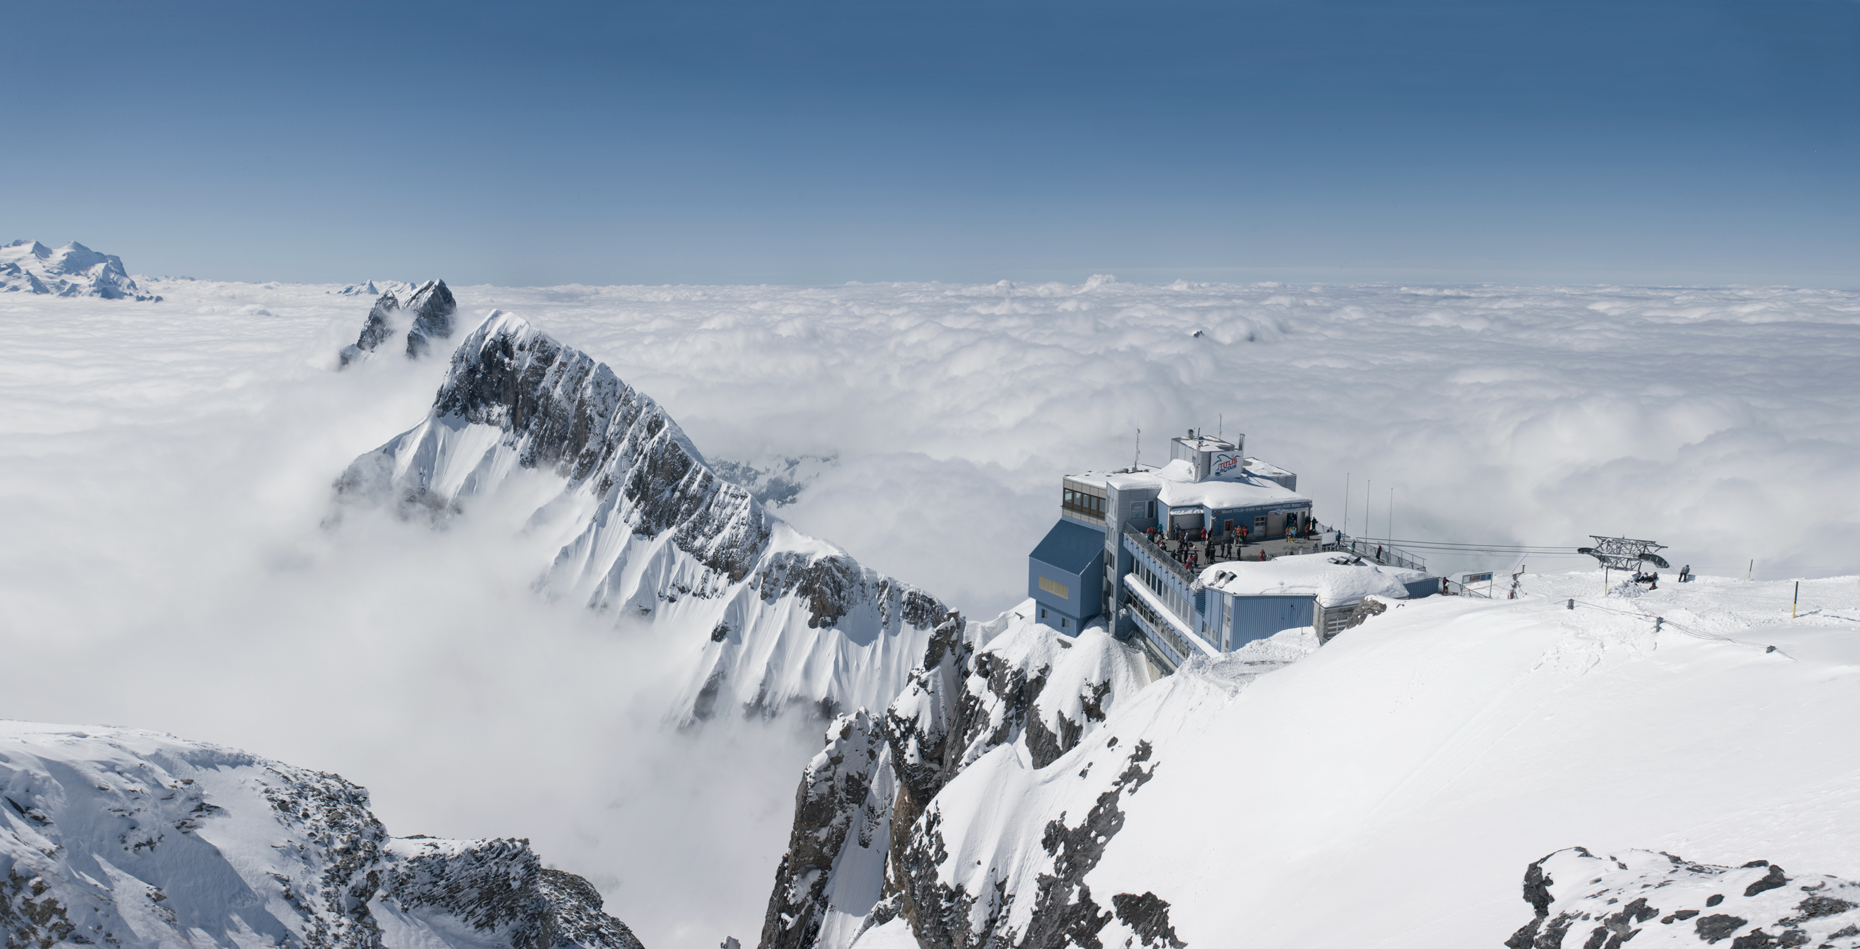 Jon Wyatt Photography - Panorama of Snow-capped mountains from above the Titlis cable car, Engelberg, switzerland